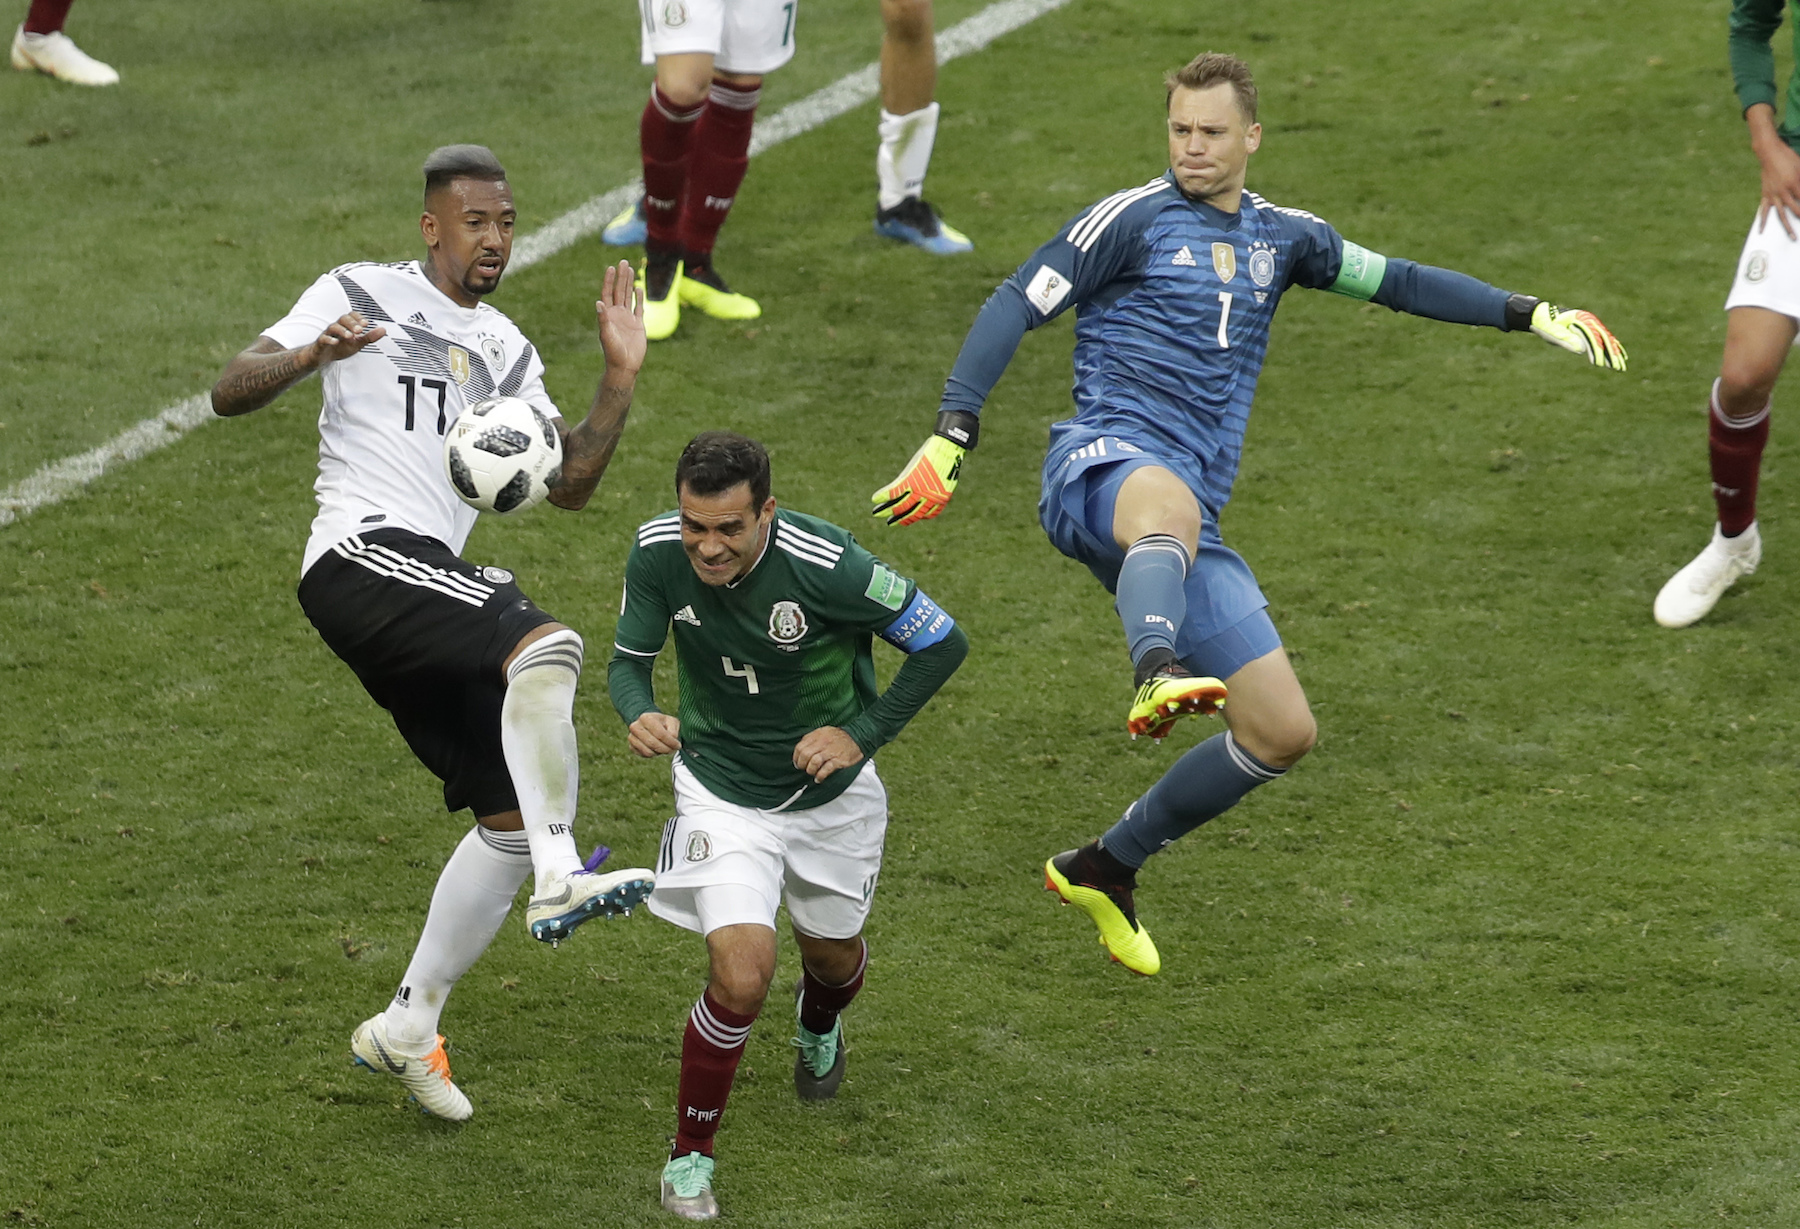 <div class='meta'><div class='origin-logo' data-origin='AP'></div><span class='caption-text' data-credit='AP Photo/Michael Probst'>Germany's Jerome Boateng, left, and goalkeeper Manuel Neuer challenge for the ball with Mexico's Rafael Marquez during the group F match between Germany and Mexico.</span></div>